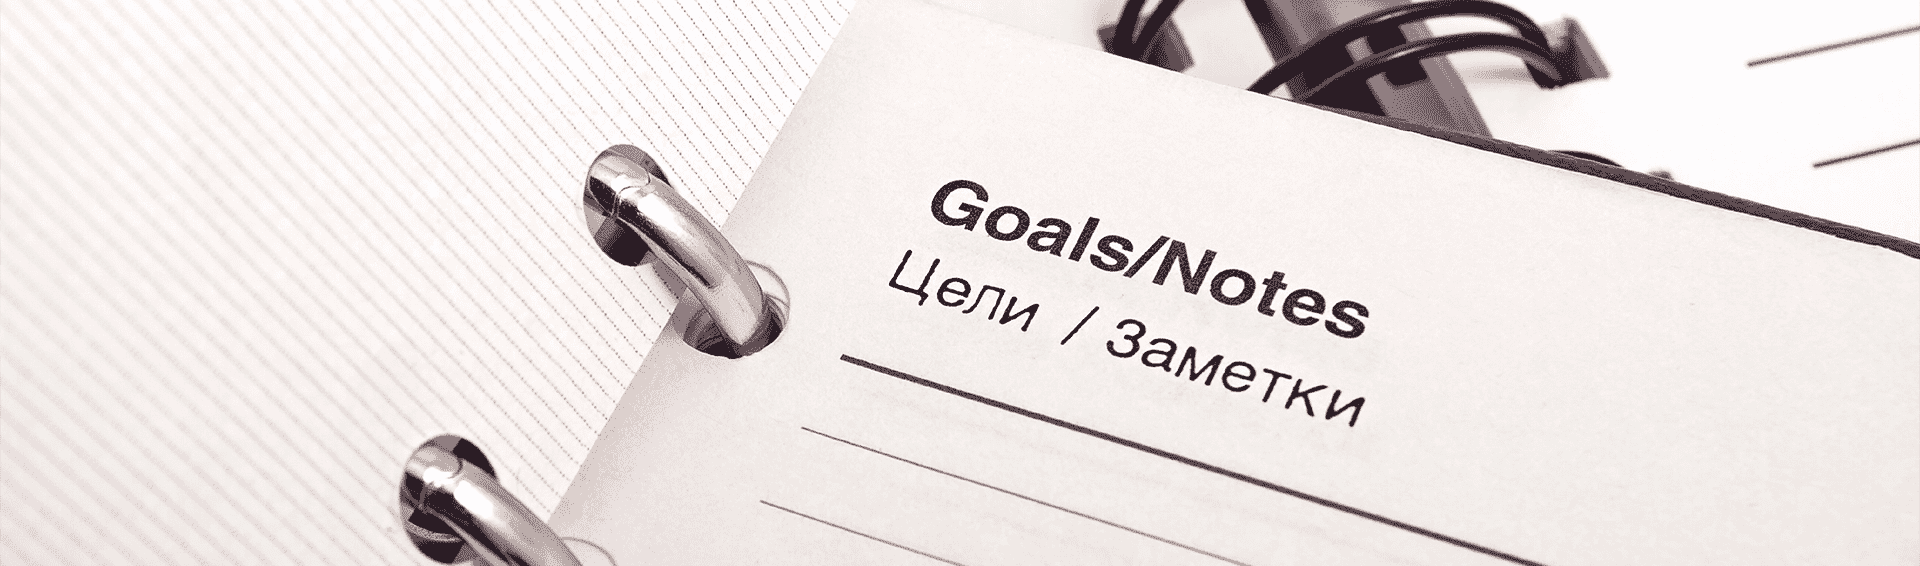 Do Your Short-Term and Long-Term Goals Align?